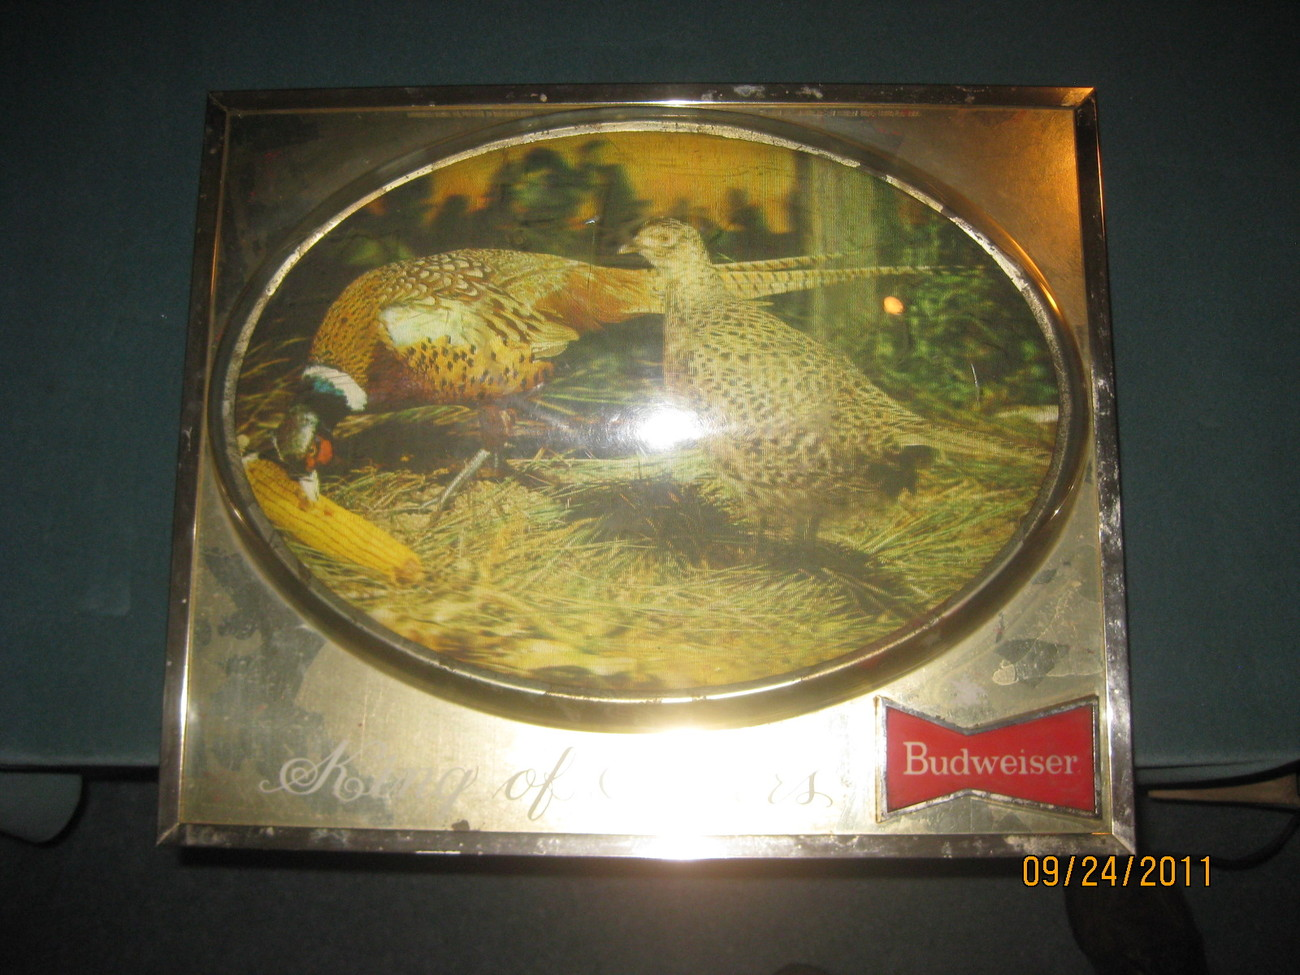 Budweiser dome sign 001